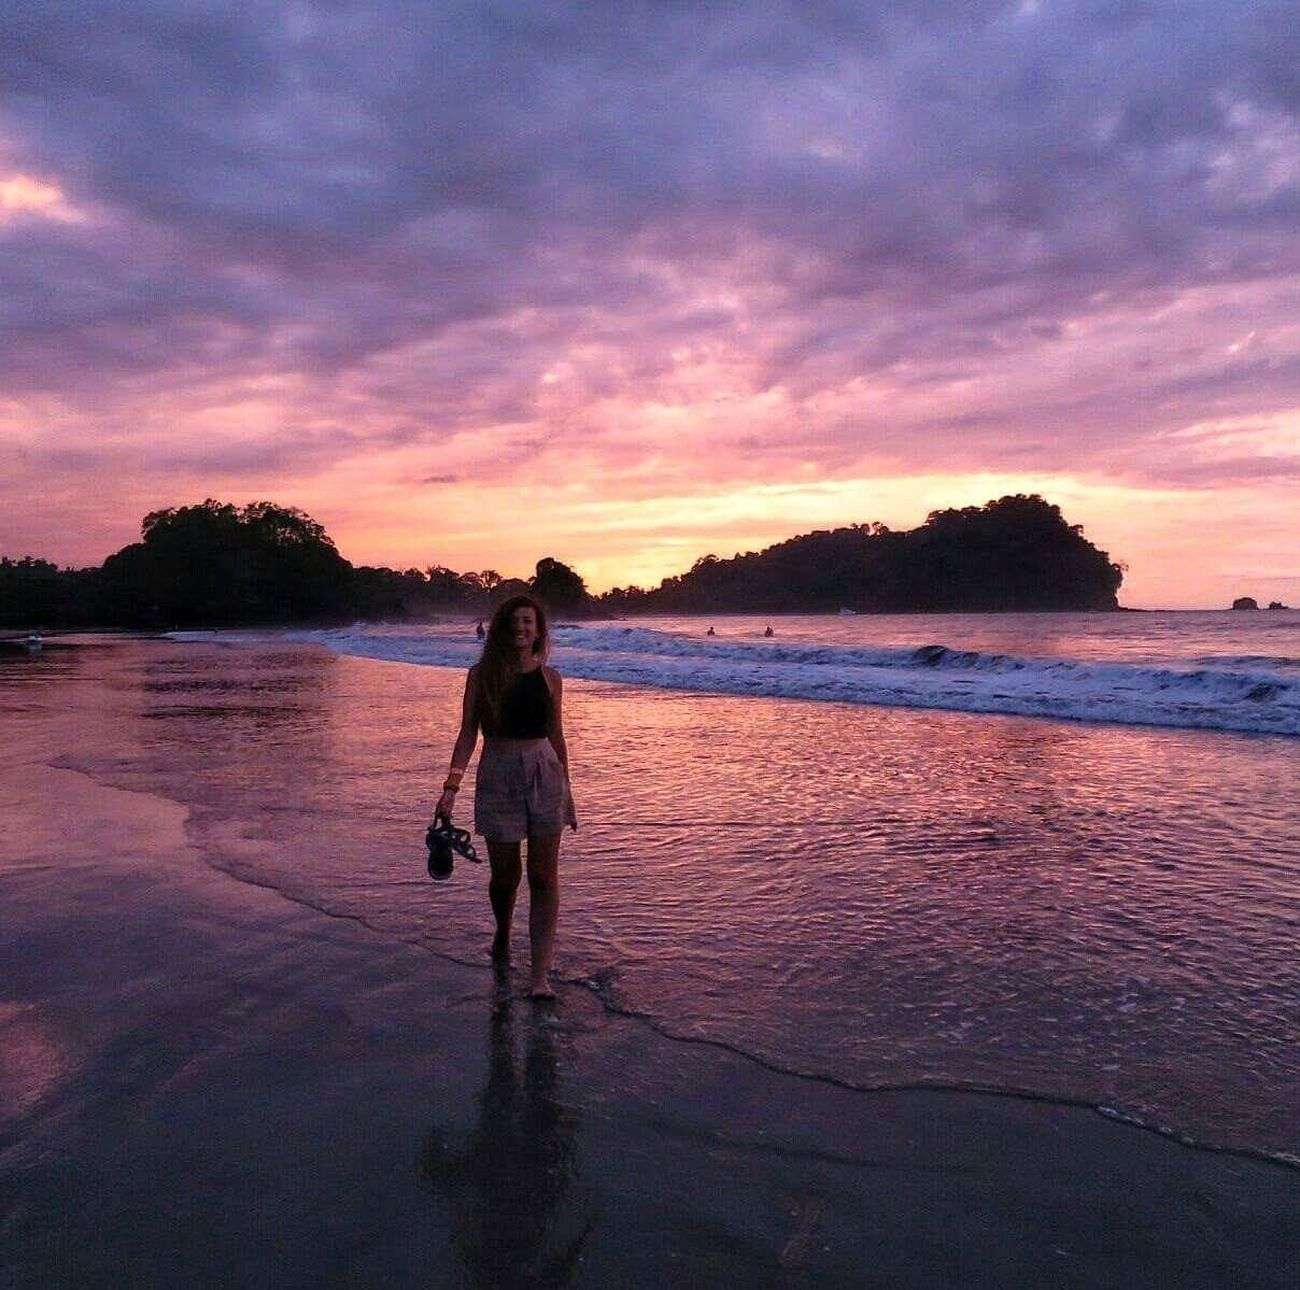 I'm not the same, having seen the moon shine on the other part of the world. Sunset Travel Reflection One Person Sky Full Length Rear View Beach Outdoors One Woman Only Nature People Travel Destinations Sand Cloud - Sky Vacations Beauty In Nature Scenics Travel Girl Pura Vida ✌ Globetrotter First Eyeem Photo Wanderlust Costa Rica Beauty In Nature EyeEmNewHere Mobile Conversations